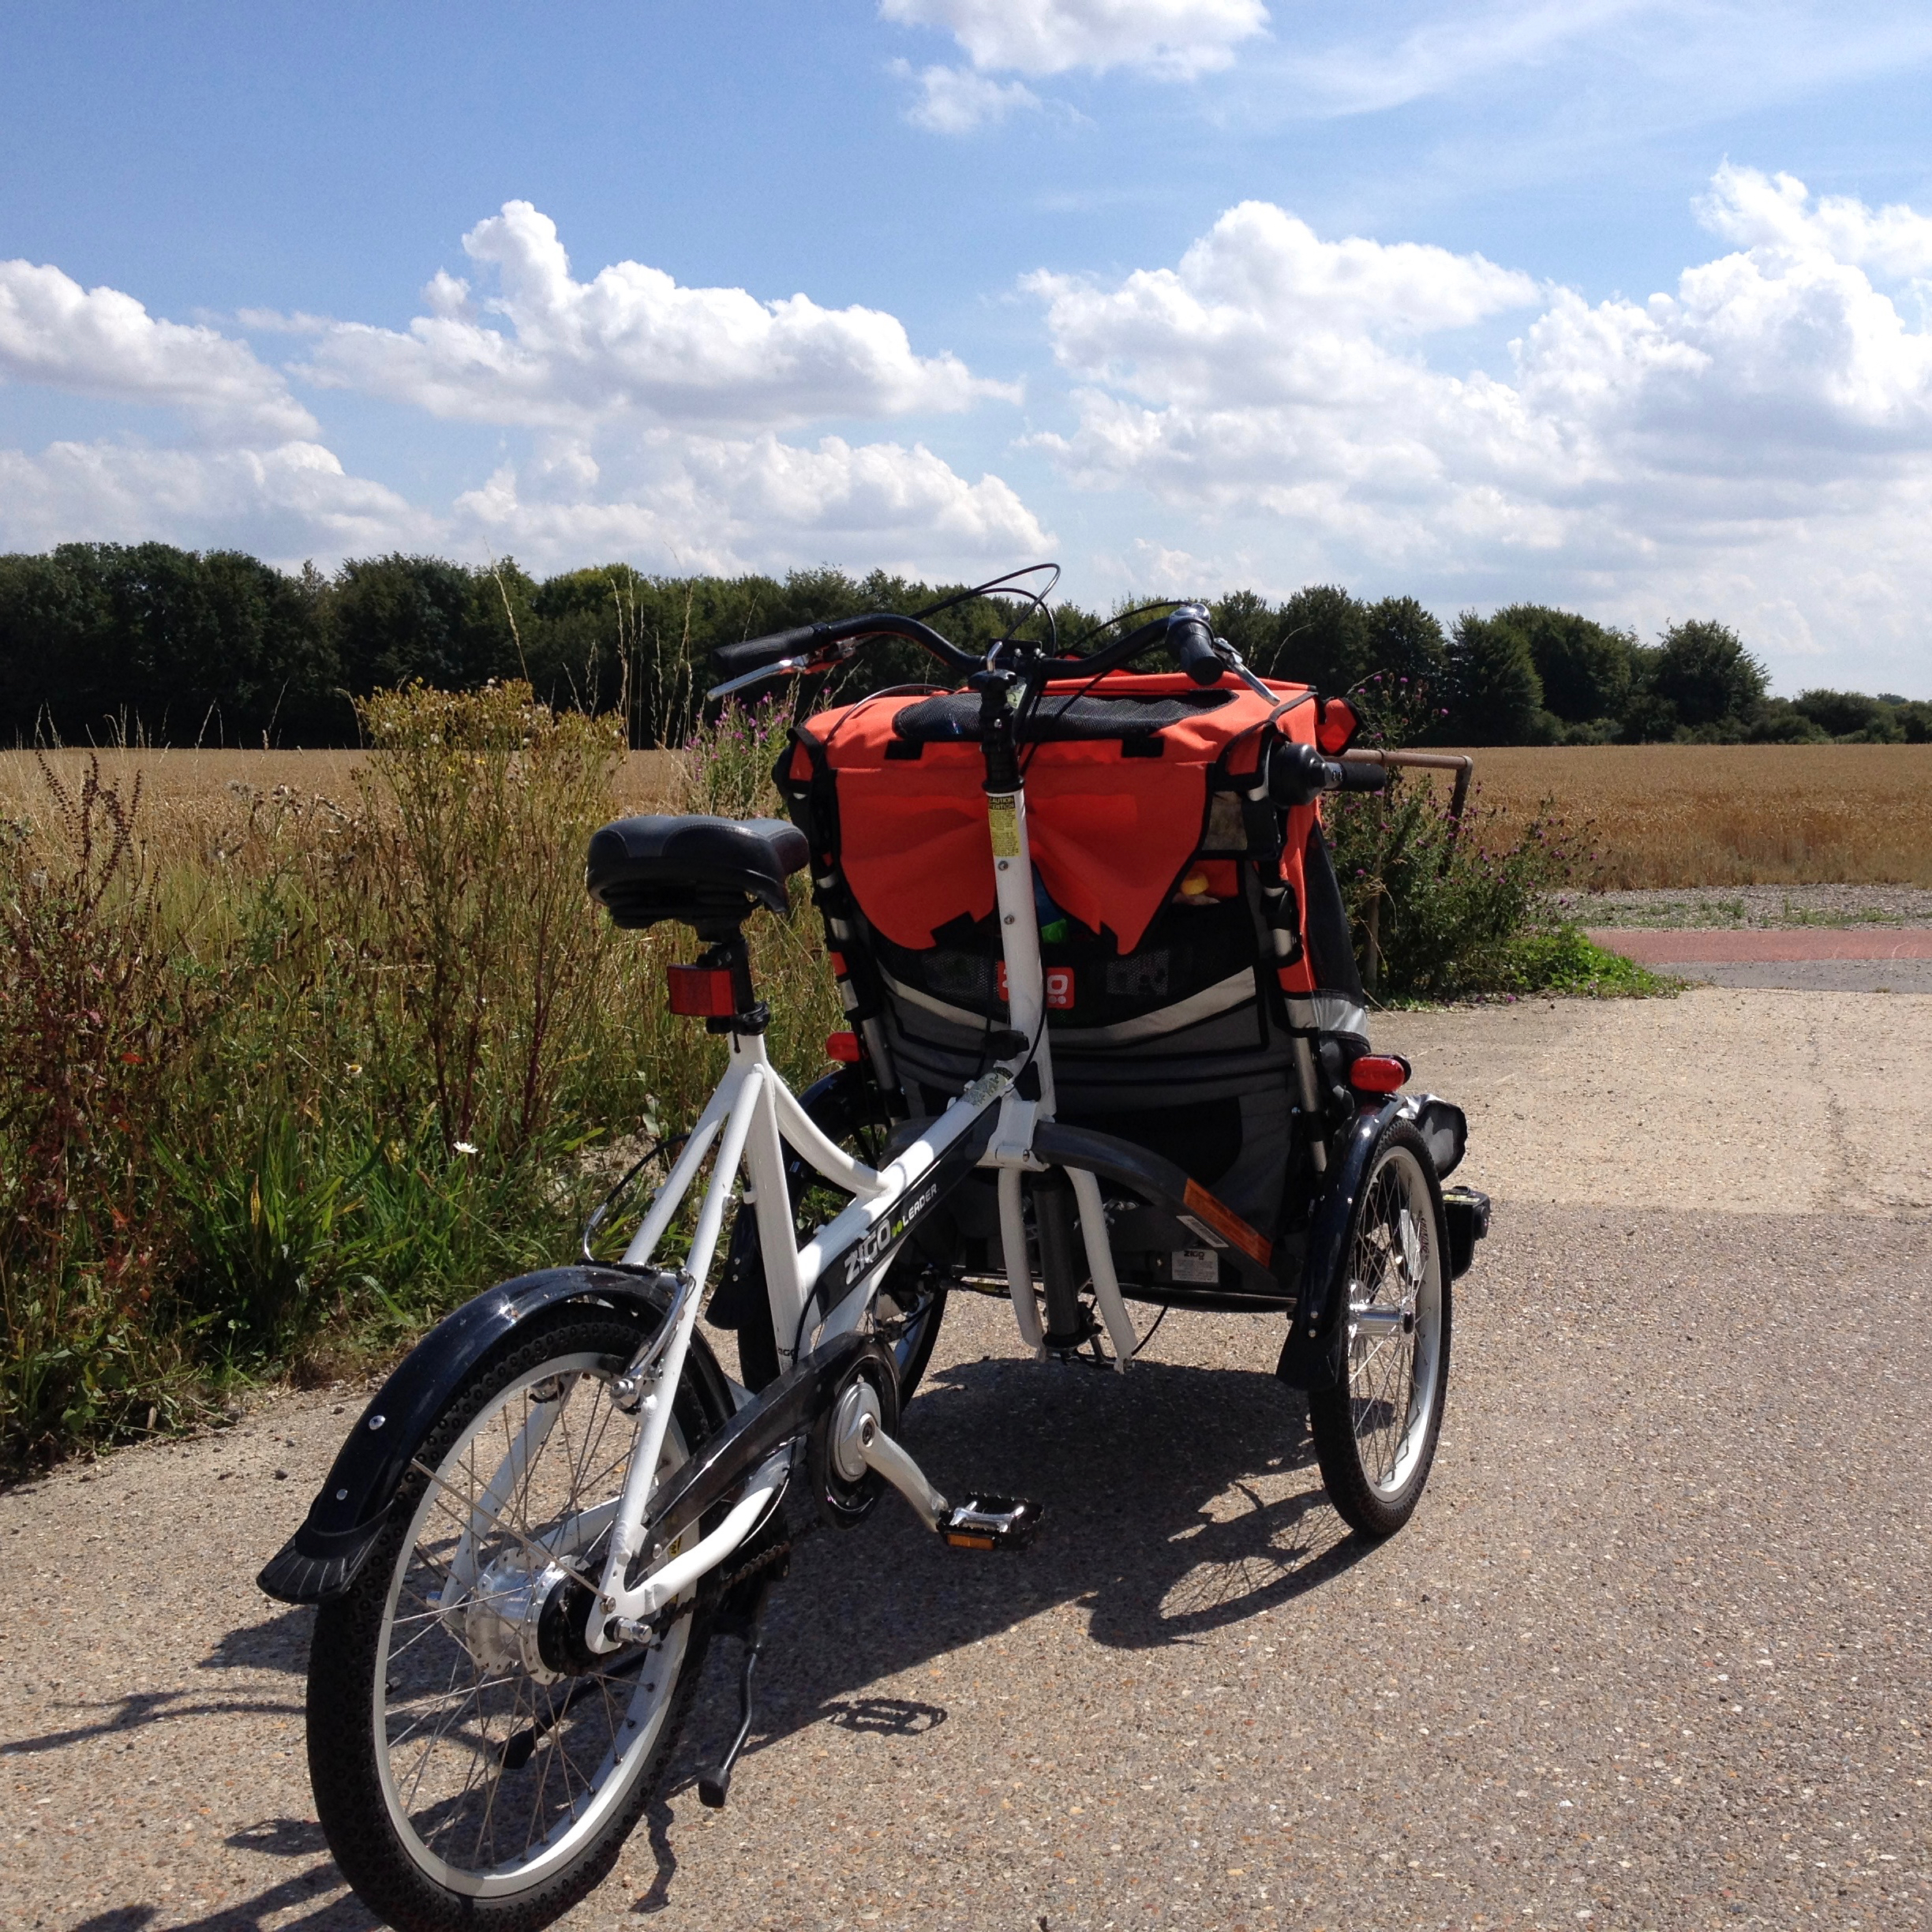 Trike on a car free cycle route